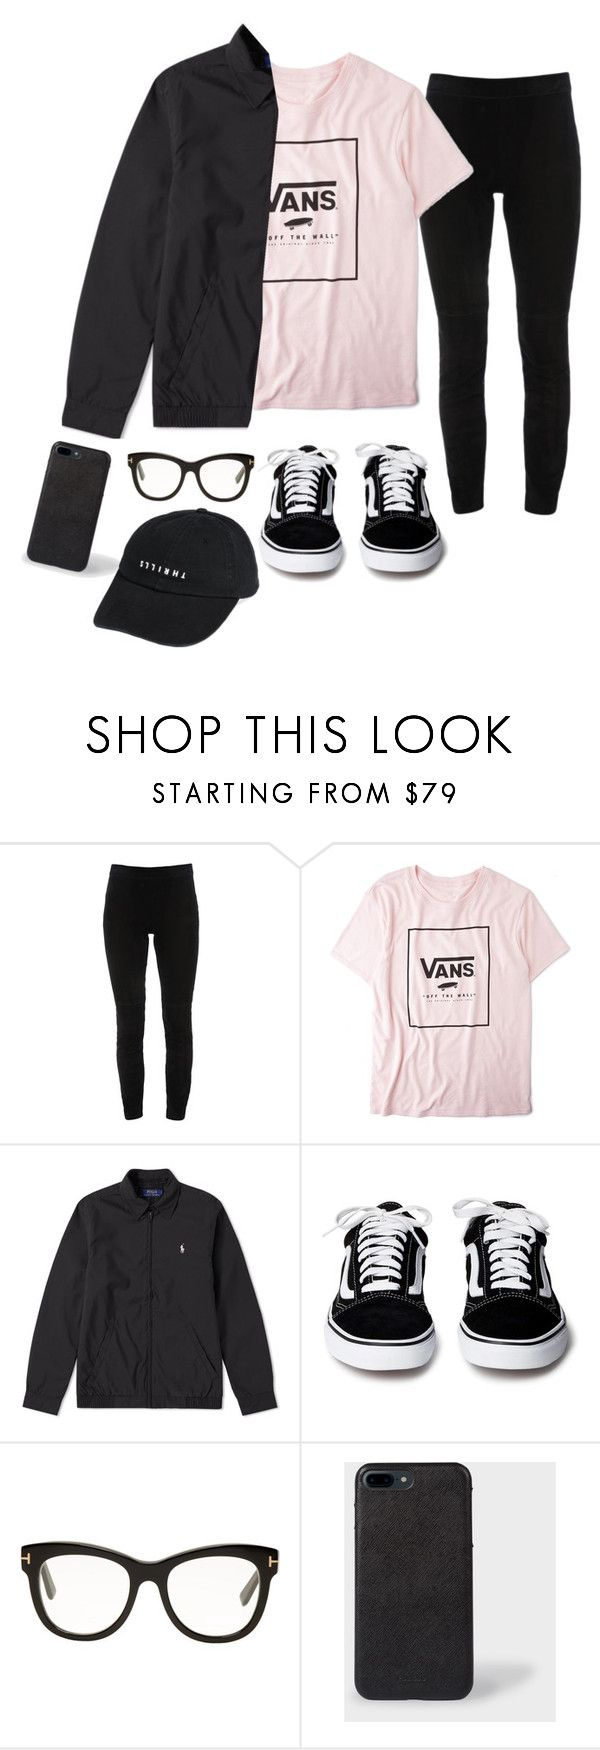 """""""Untitled #14"""" by hannahdowns14 on Polyvore featuring Elie Tahari, Vans, Tom Ford, Paul Smith and Thrills"""